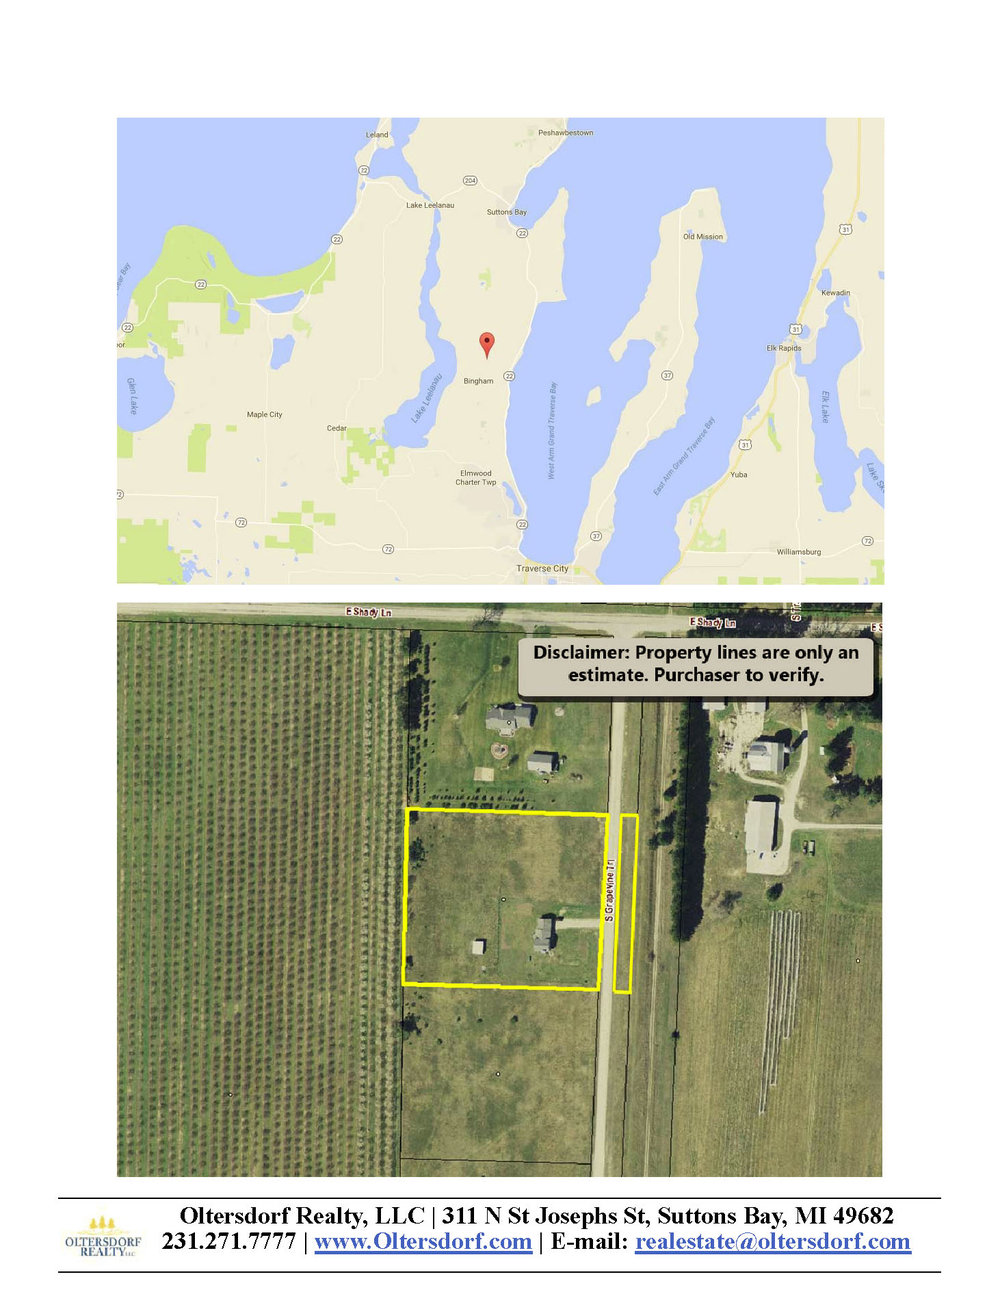 6100 S Grapevine Trail, Suttons Bay, Leelanau County Home for sale by Oltersdorf Realty LLC - Marketing Packet (7).jpg